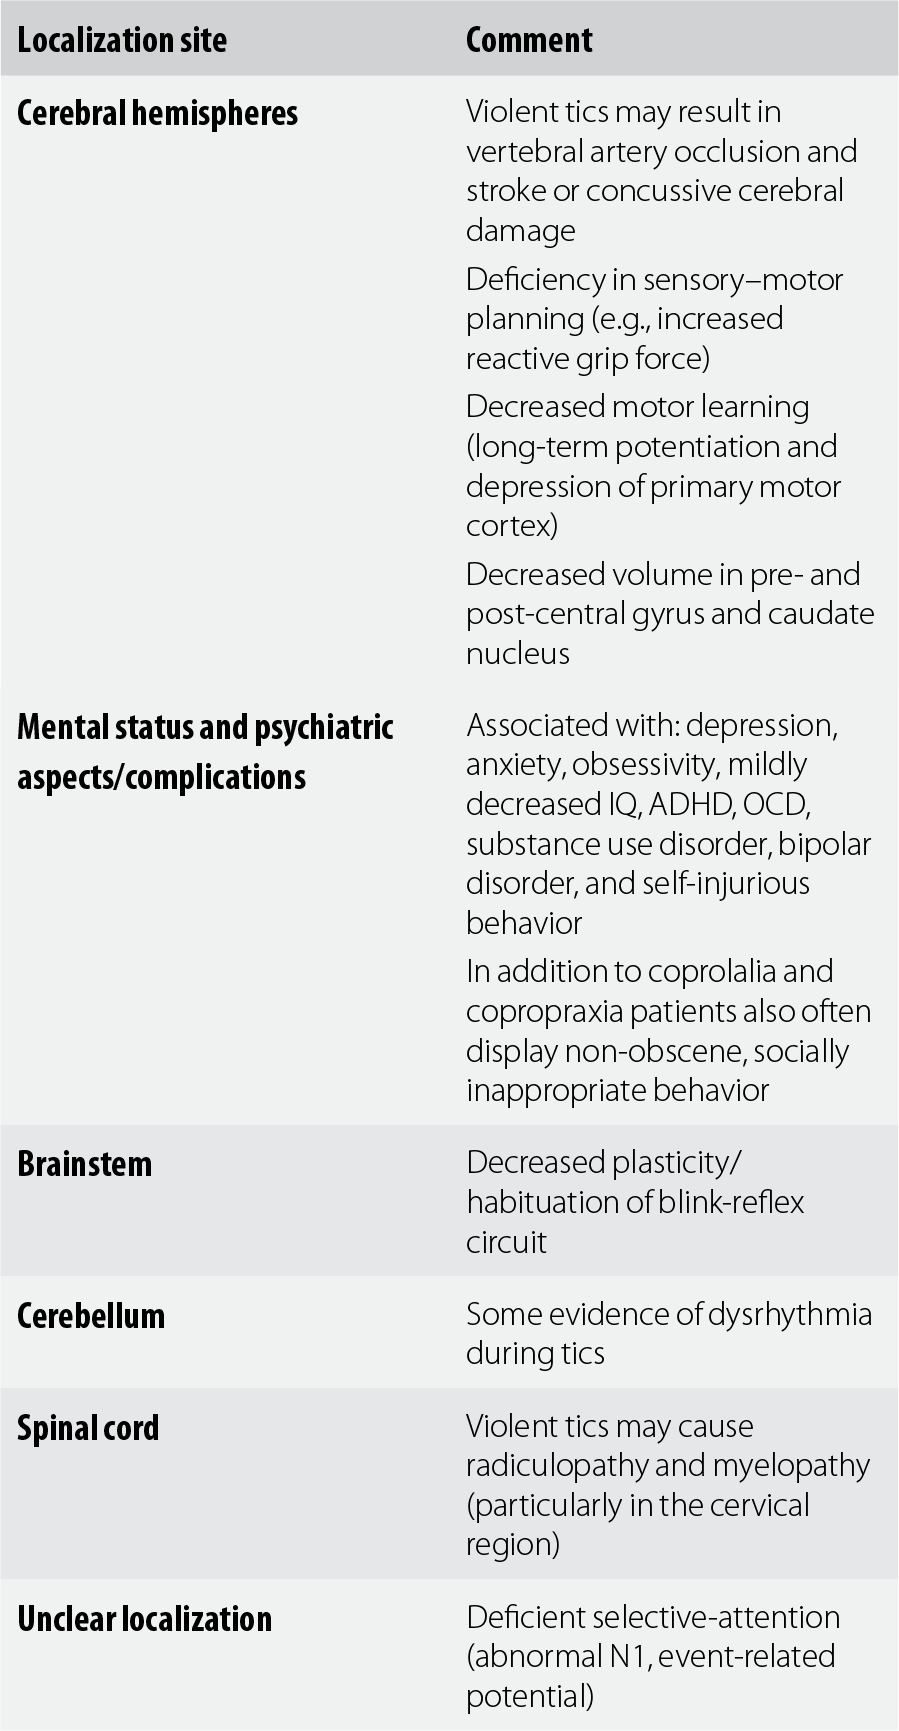 T - Synopsis of Neurology, Psychiatry and Related Systemic